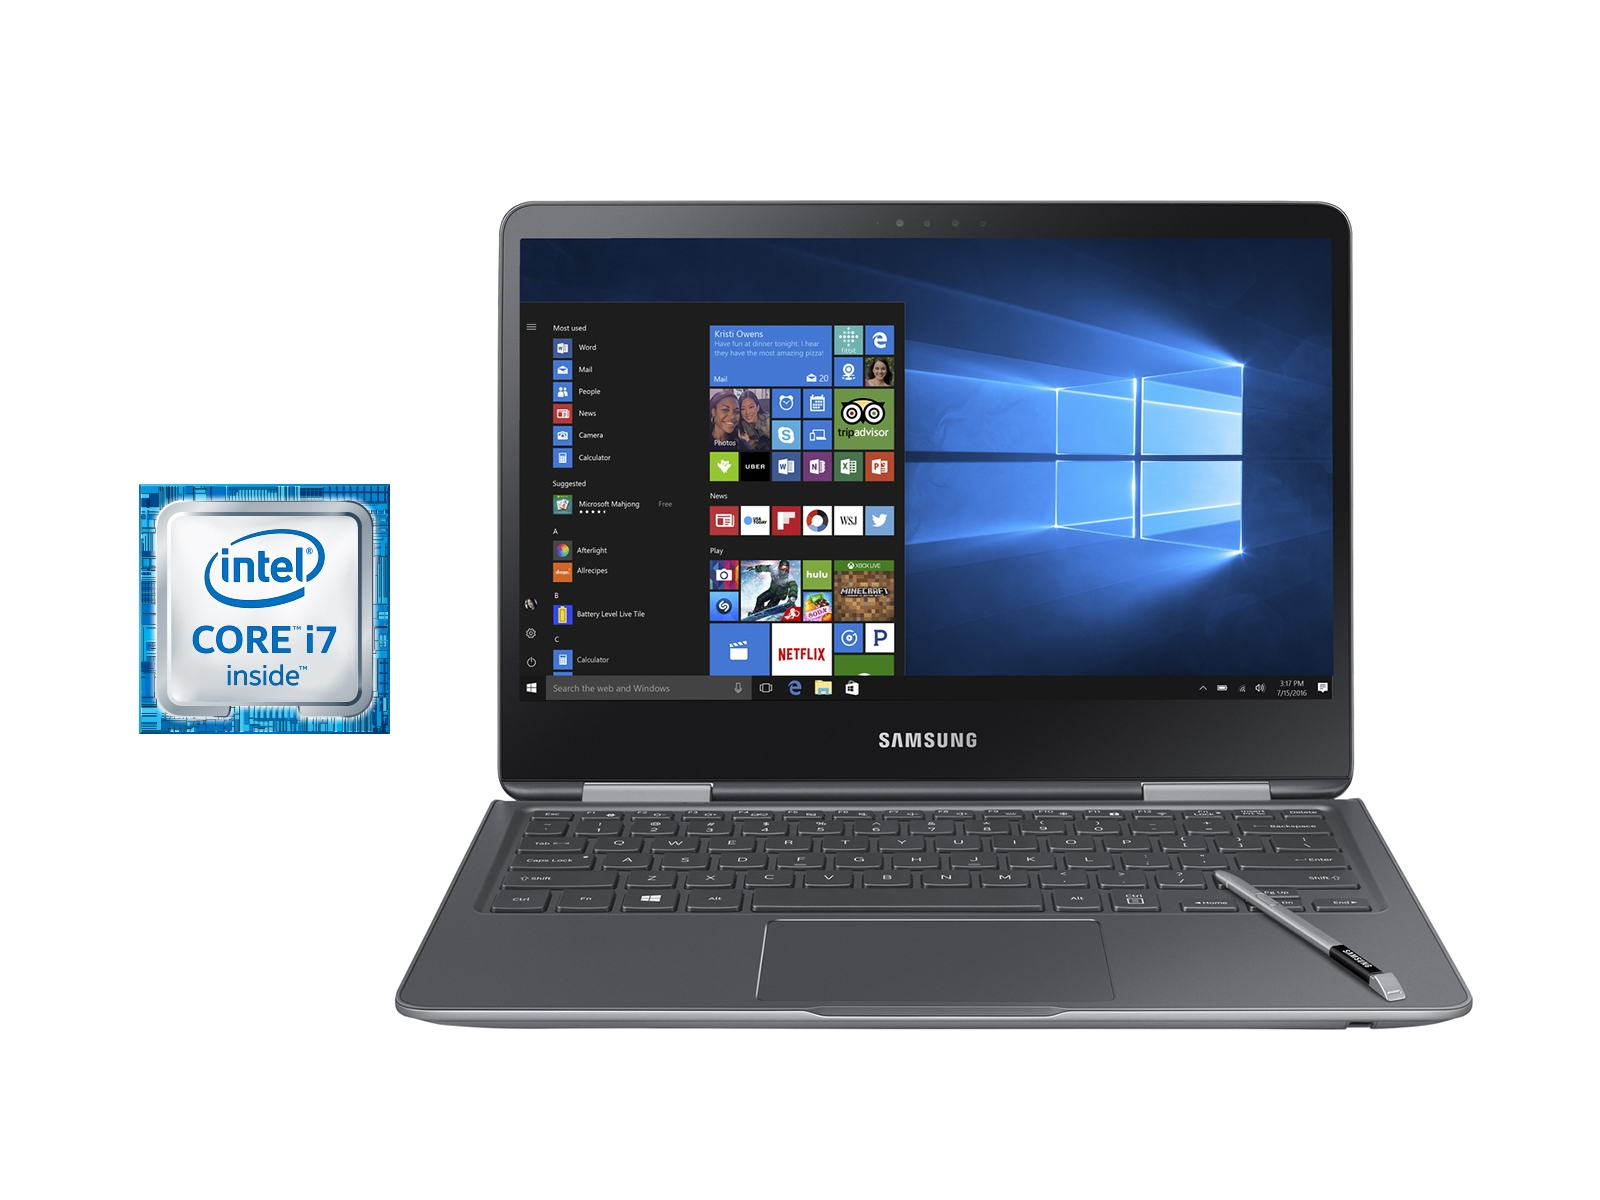 Samsung NP300U1A Series 3 Notebook Bluetooth Drivers for Windows Mac